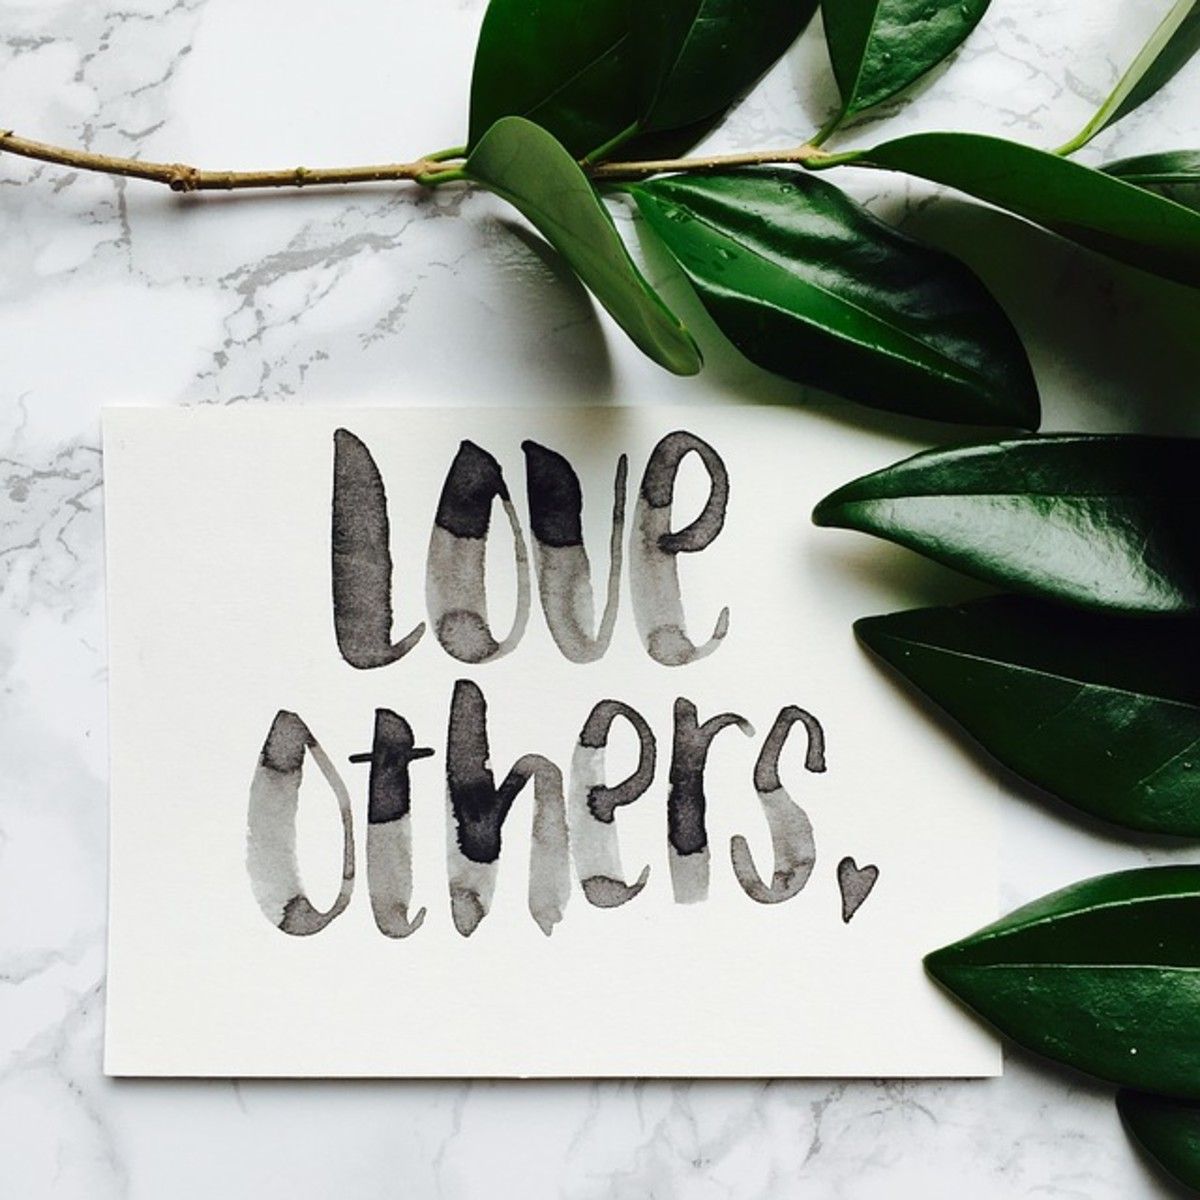 35 Beautiful Bible Verses About Love: God's Word on Loving Others